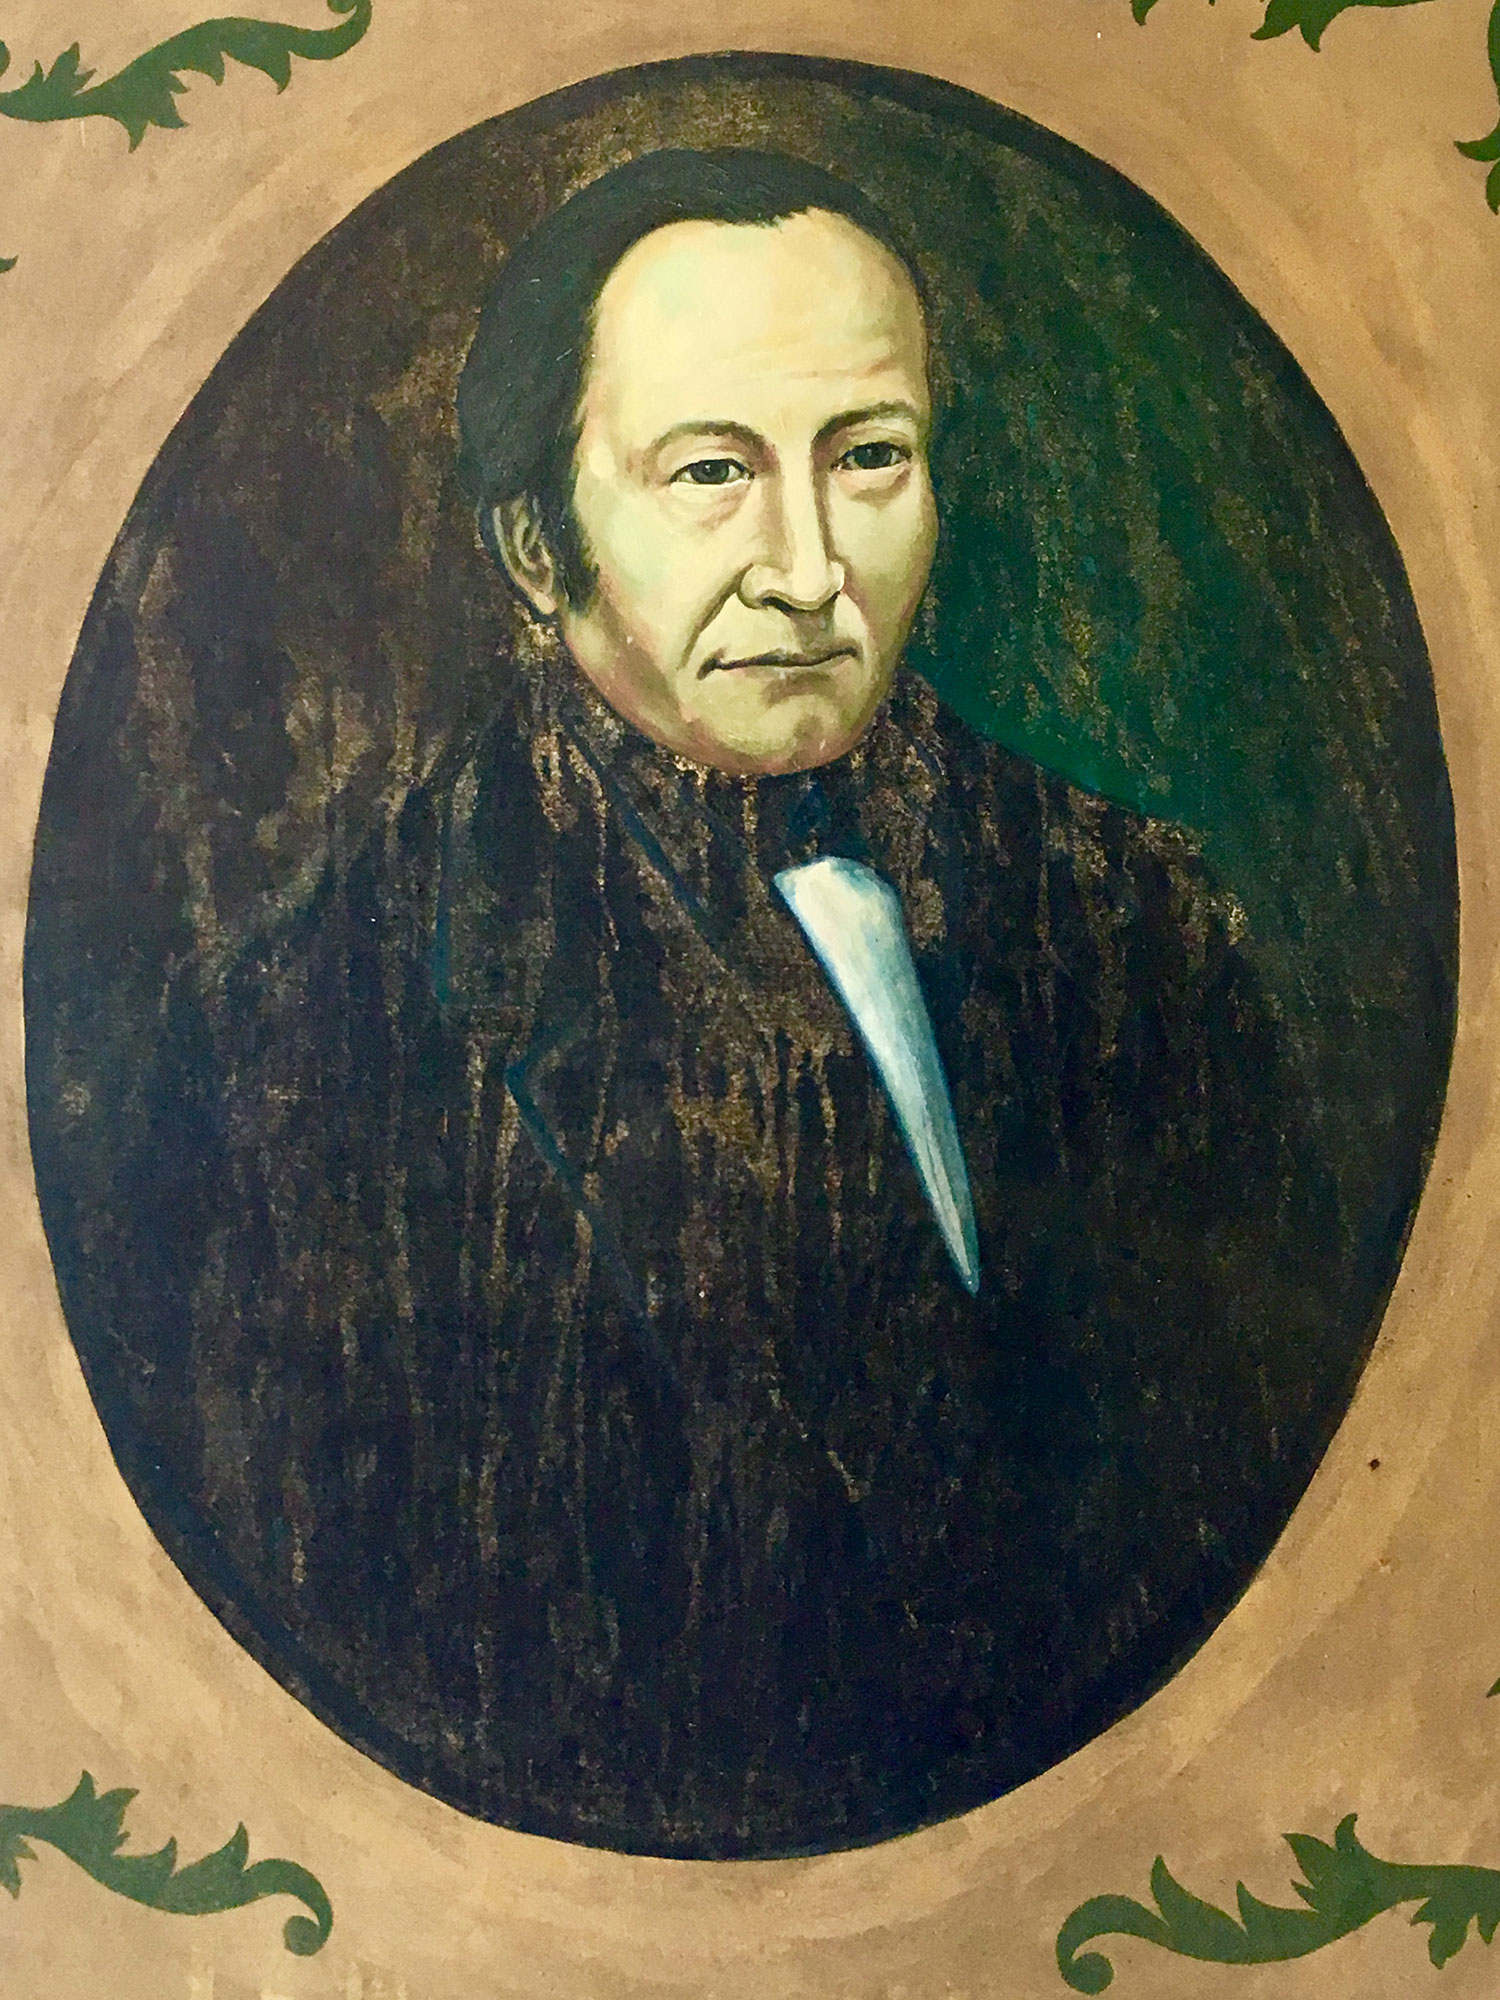 Pedro José Iznaga and his wife, portraits from the hacienda.